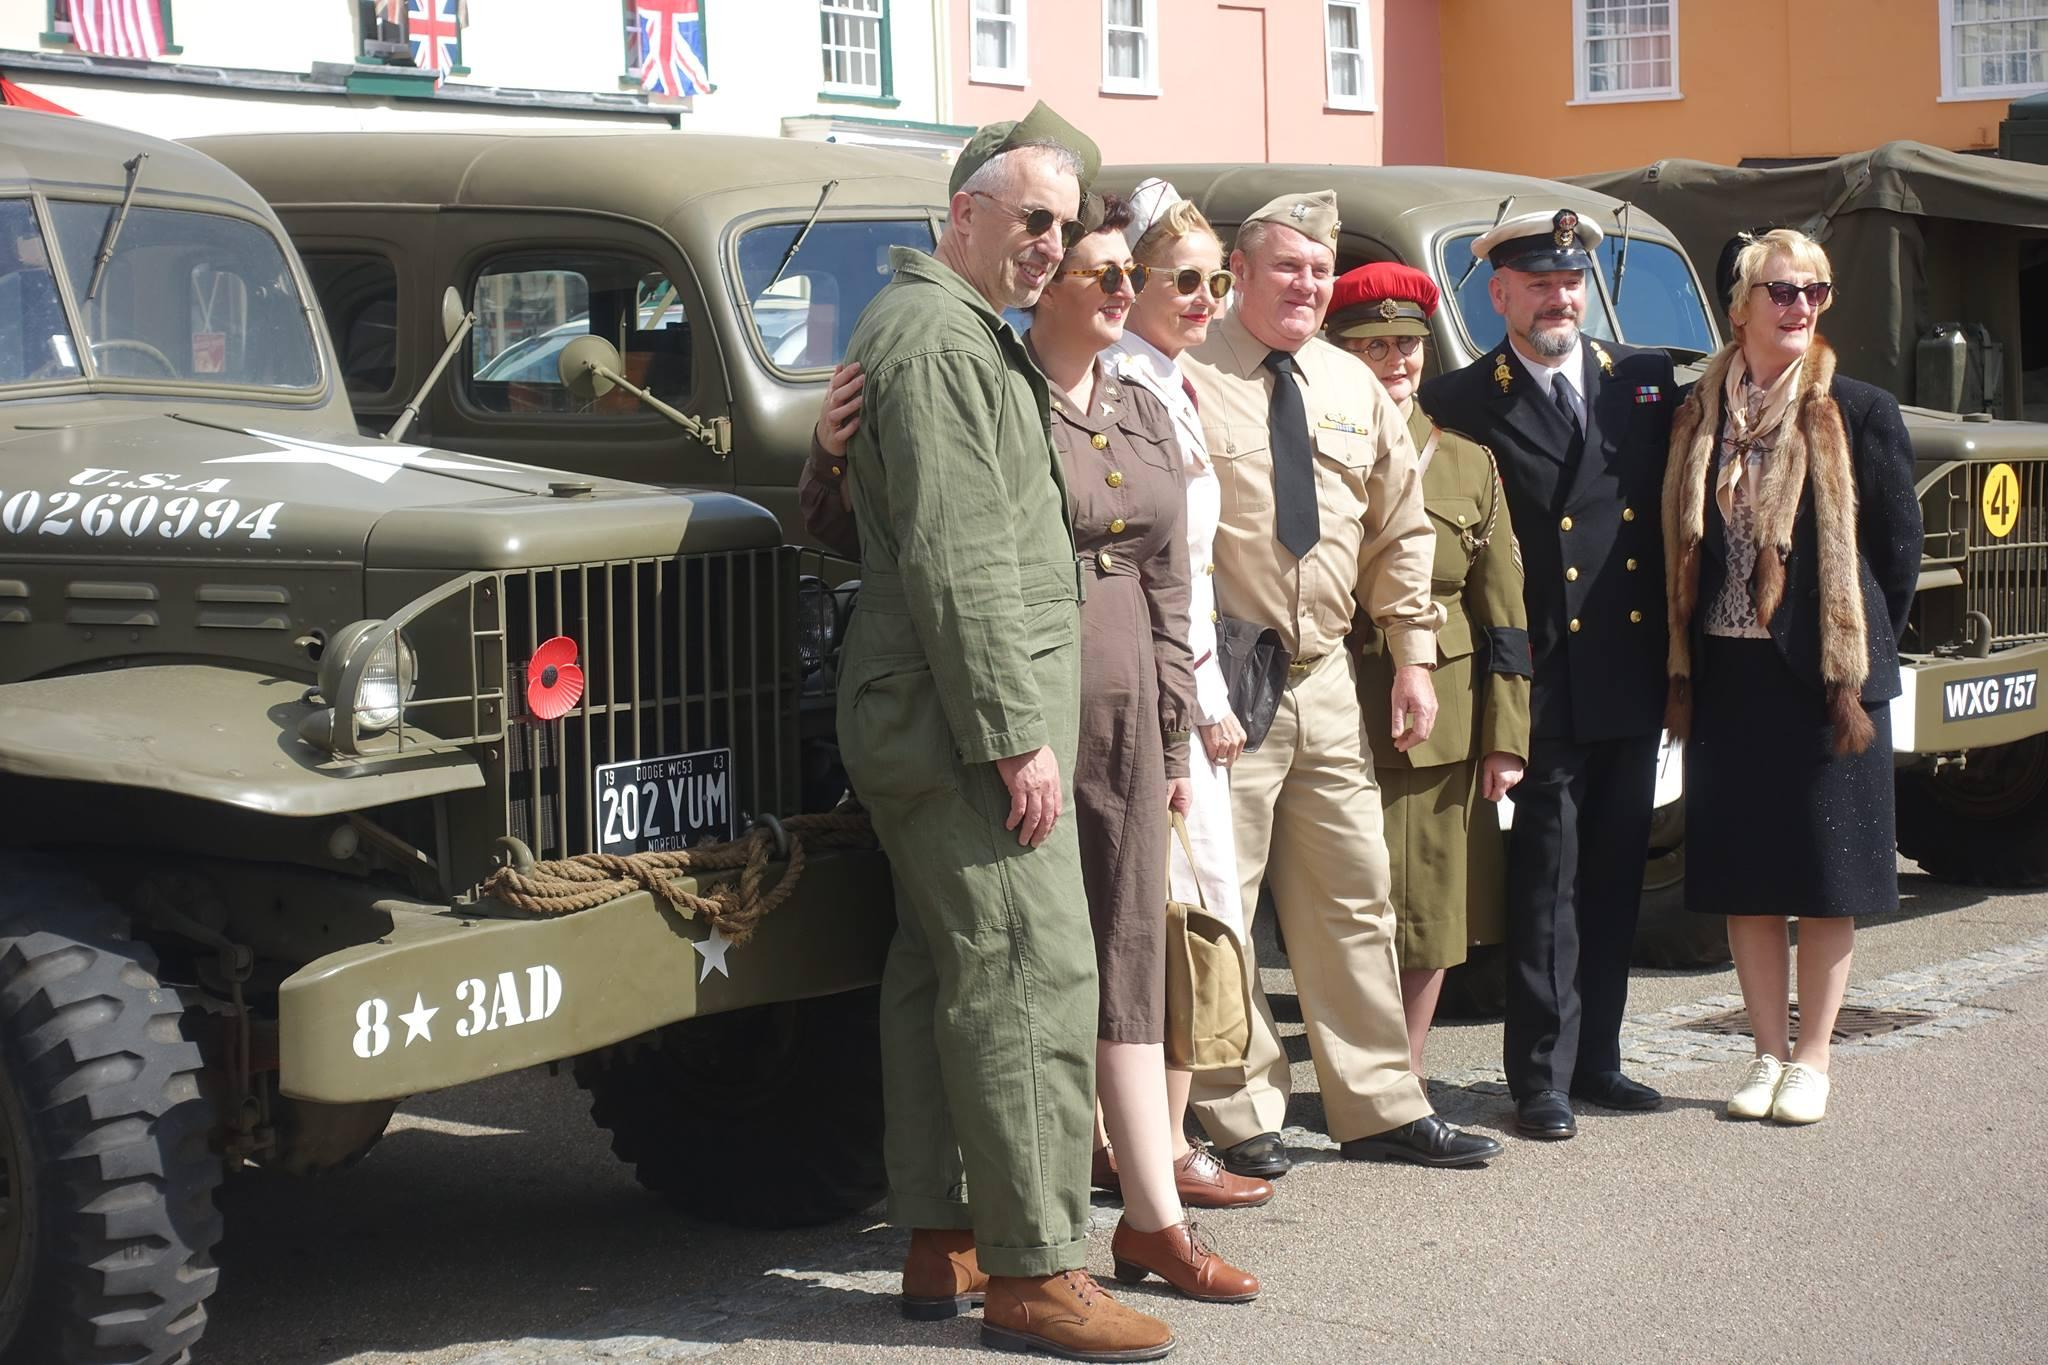 Lavenham Vintage 1940s Weekend